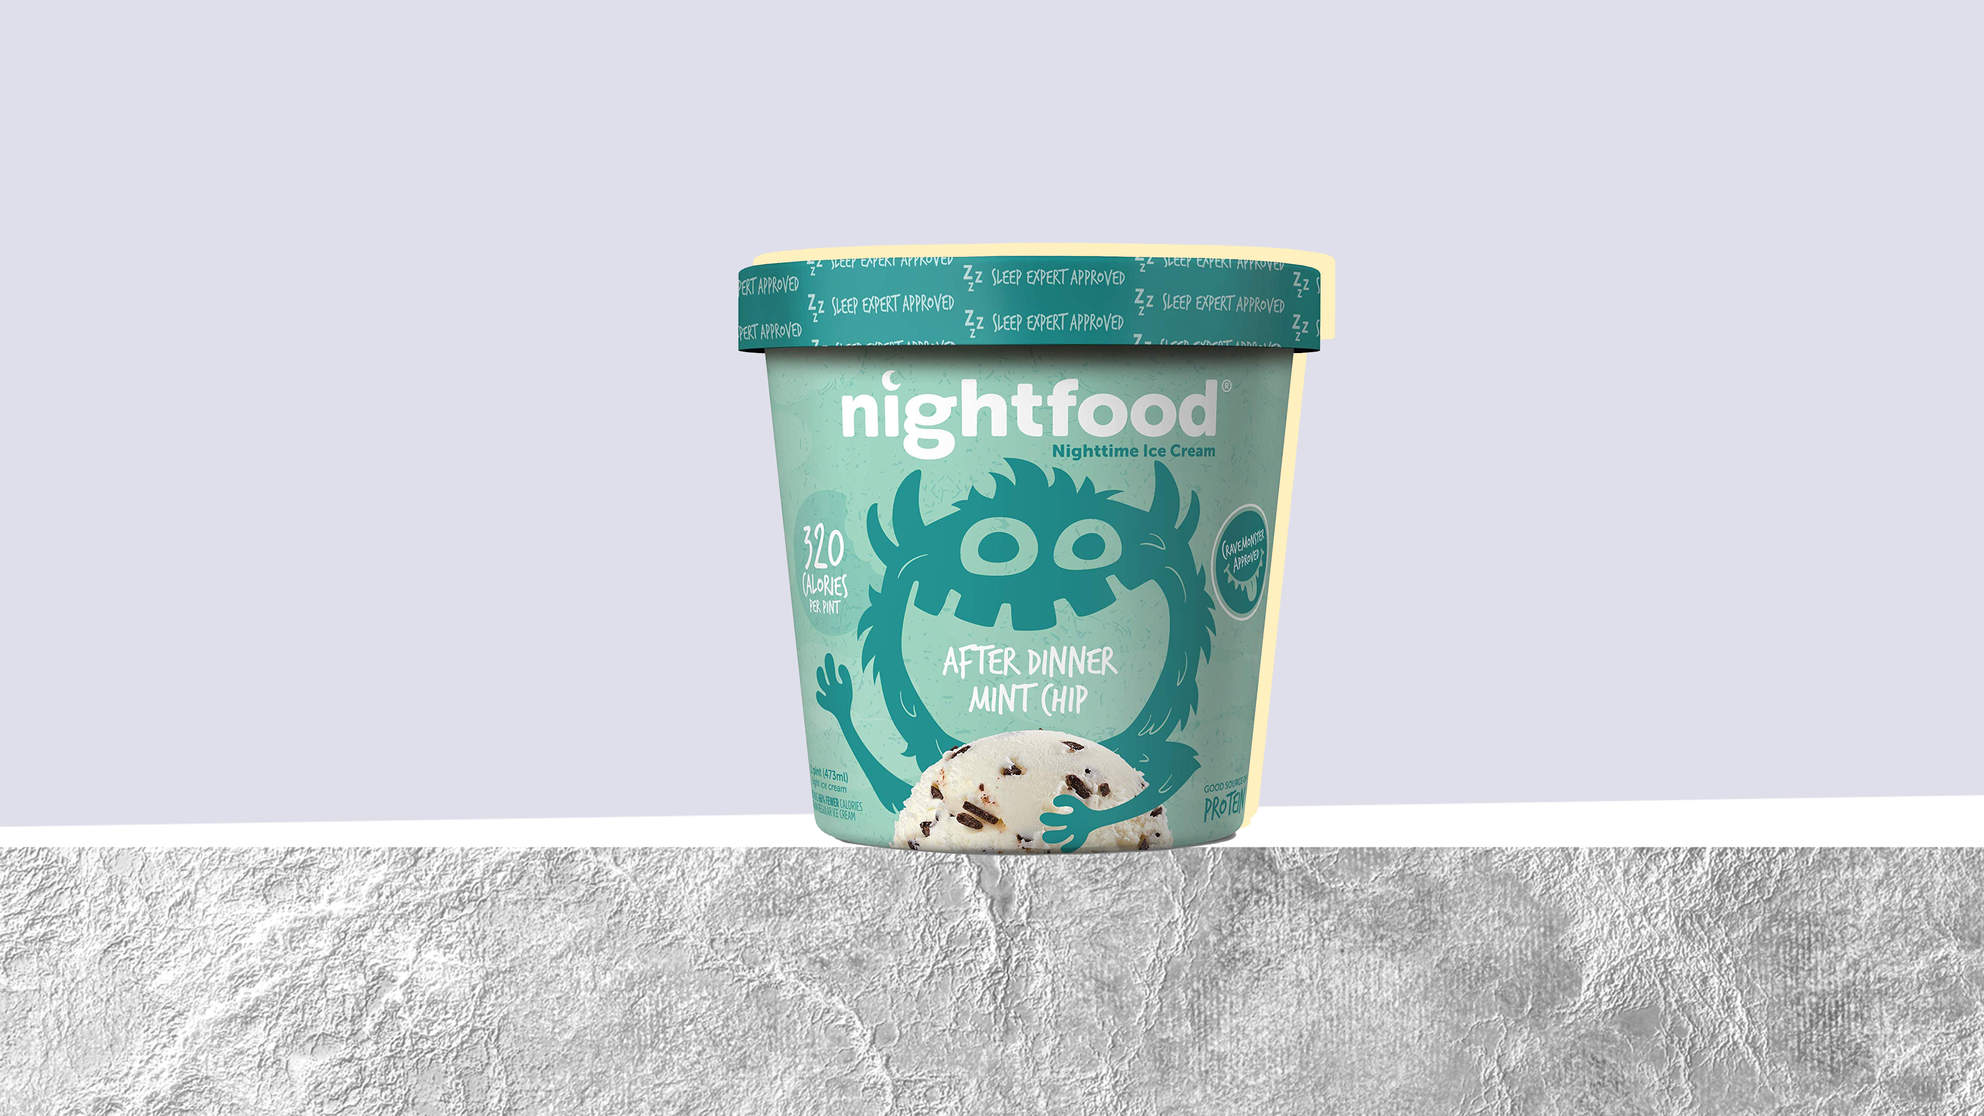 This New Ice Cream Brand Claims to Help You Sleep—but Does It Really Work?